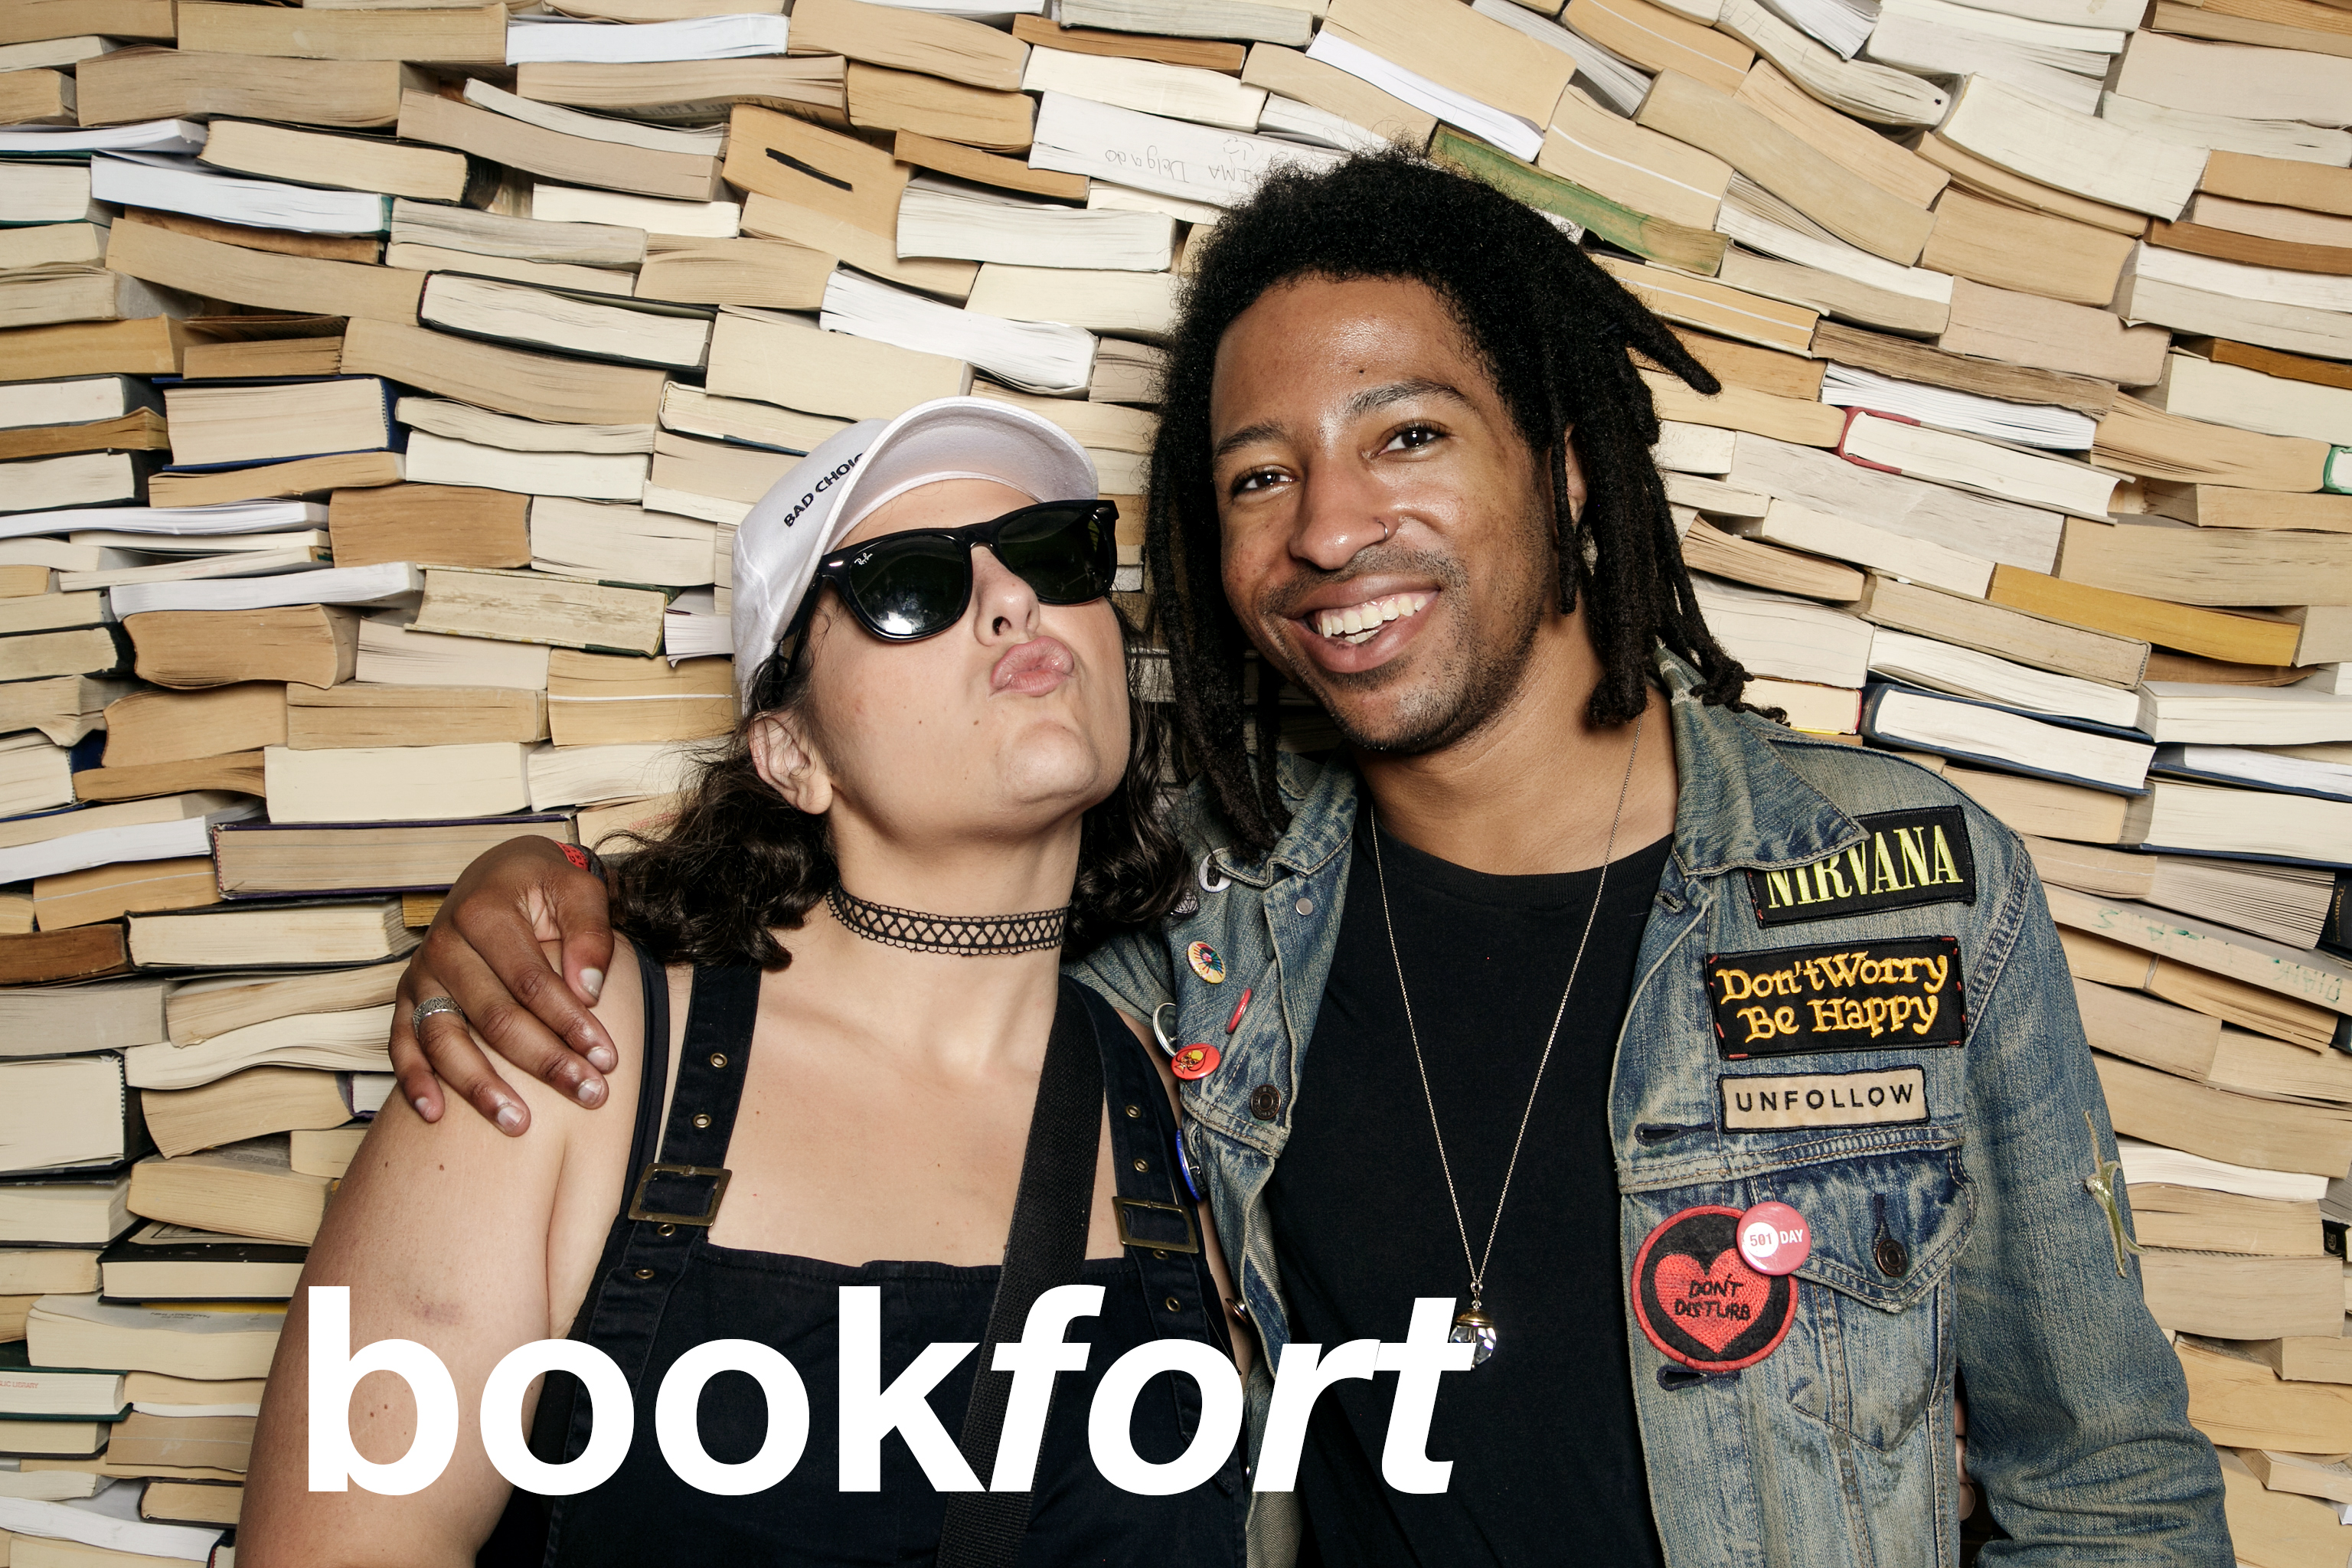 glitterguts photo booth portraits from book fort at pitchfork fest in chicago, july 2018